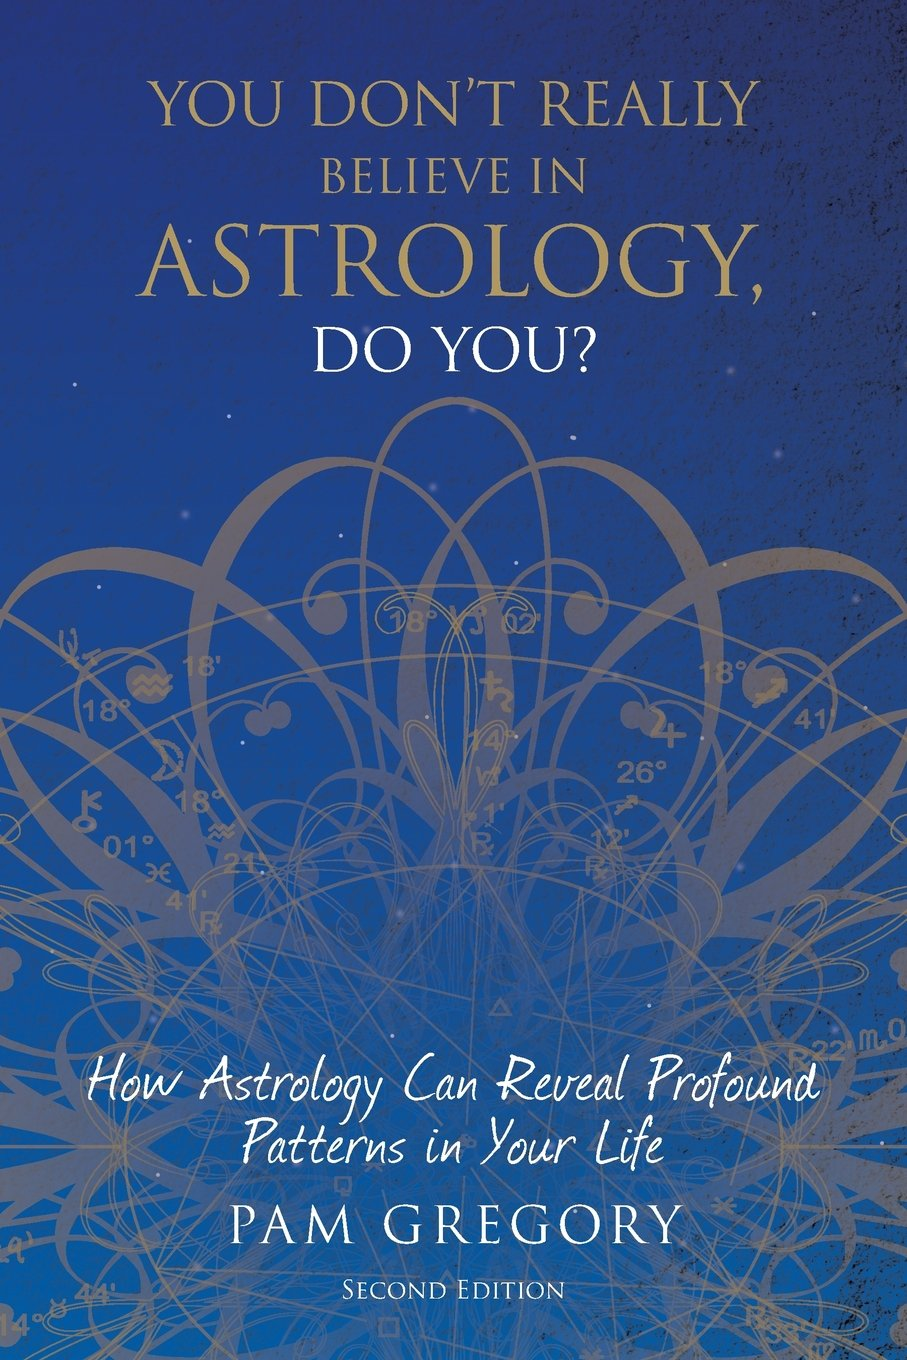 You Don't Really Believe in Astrology, Do You?: How Astrology Can Reveal Profound Patterns in Your Life by Silverwood Books